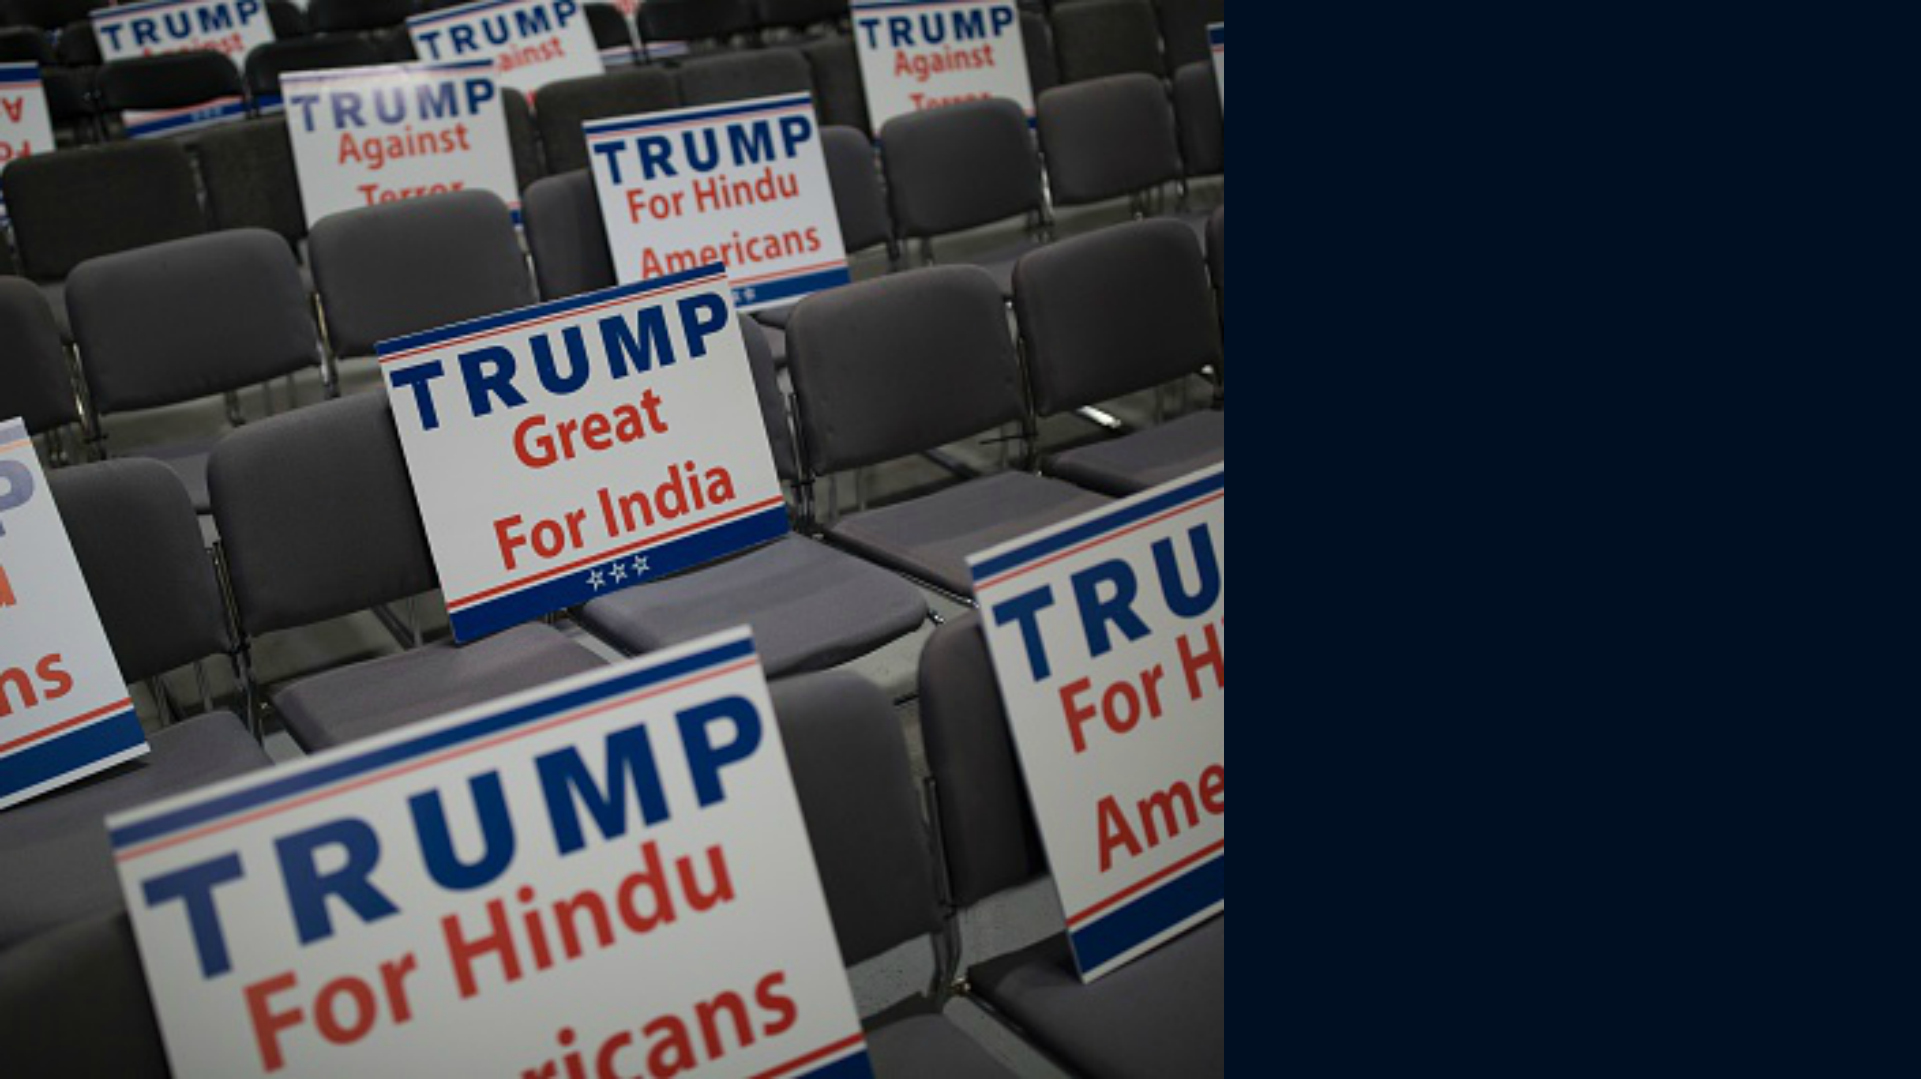 Republican Hindu Coalition: A misguided idea of community